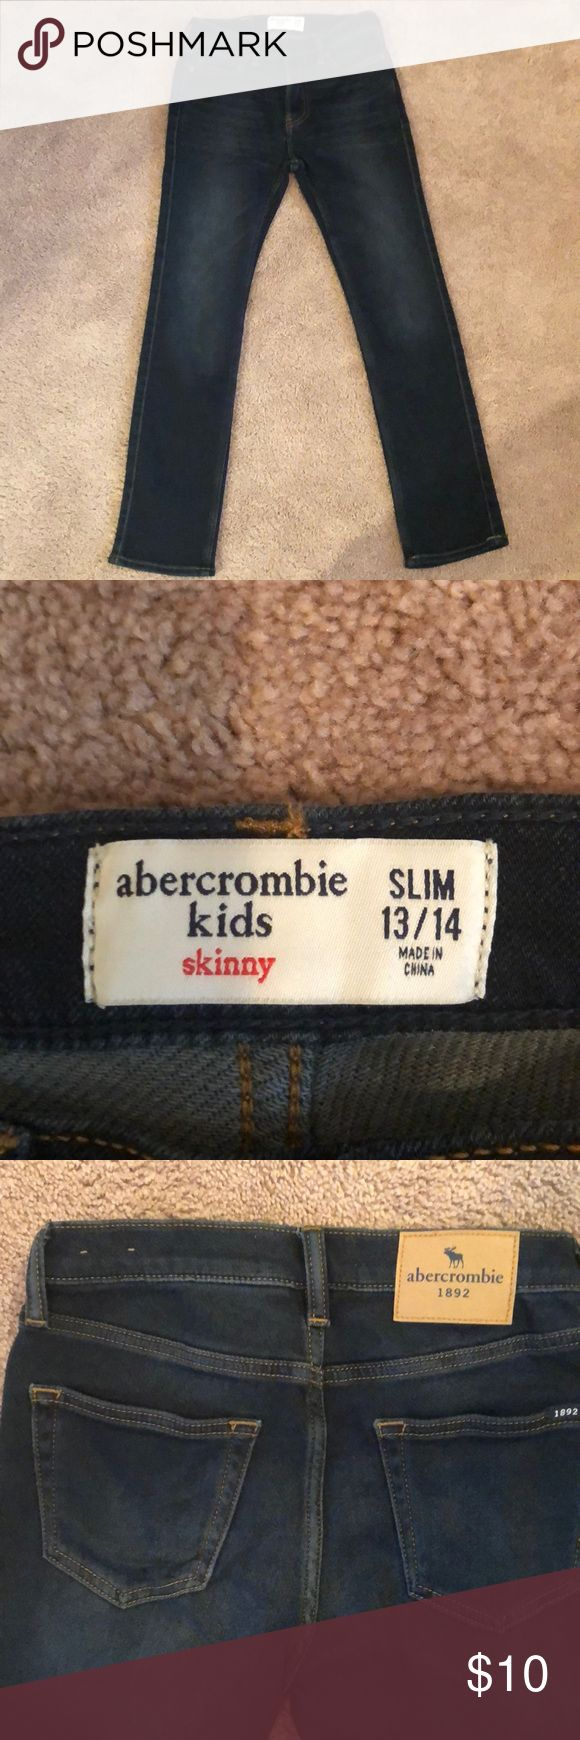 Boys Abercrombie jeans skinny.. Brand new no tags Abercrombie kids boys skinny jeans size 13/14 slim Abercrombie & Fitch Bottoms Jeans